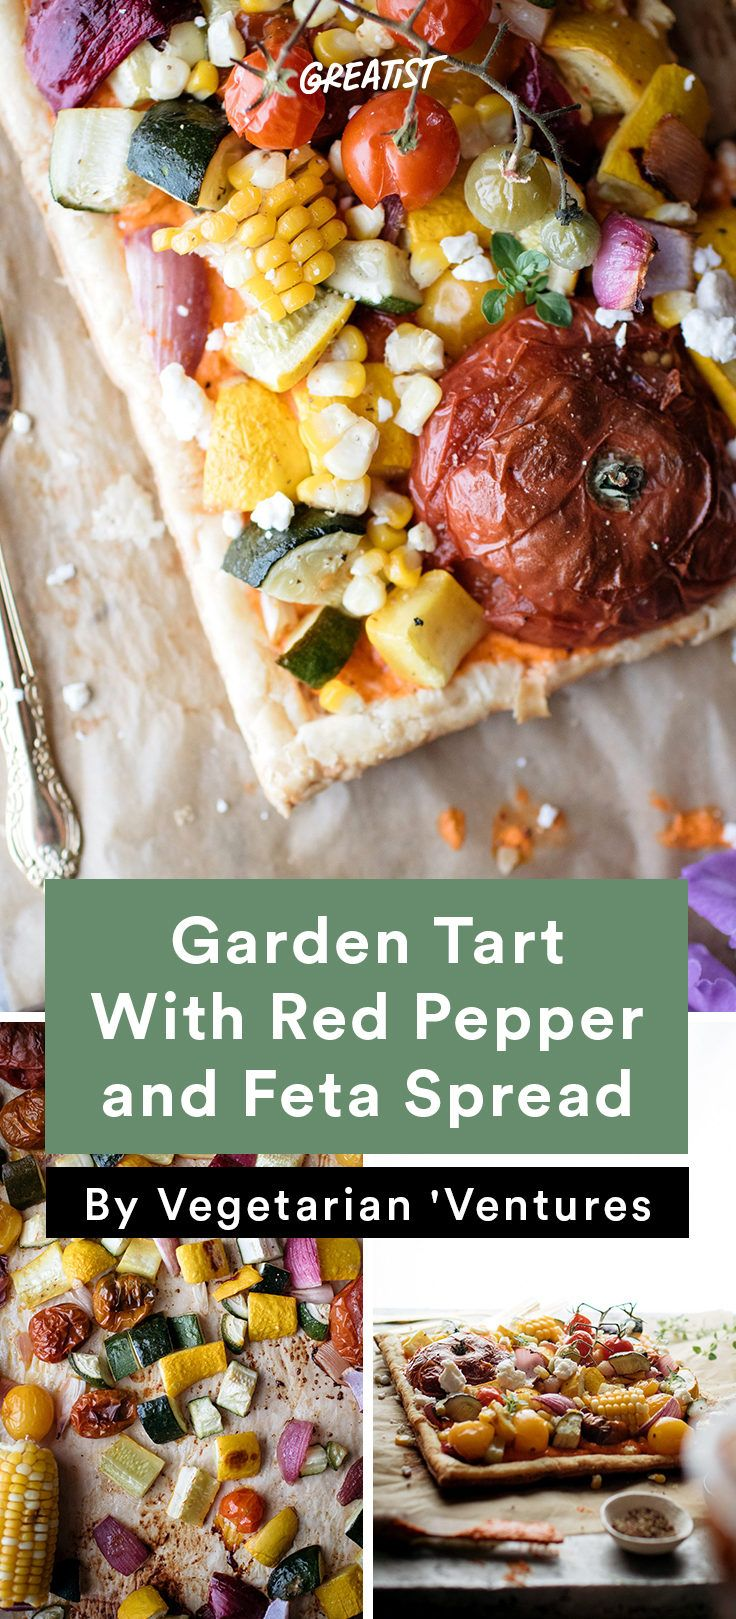 1. Garden Tart With Red Pepper and Feta Spread #healthy #vegetarian #dinner #recipes http://greatist.com/eat/healthy-vegetarian-dinner-recipes